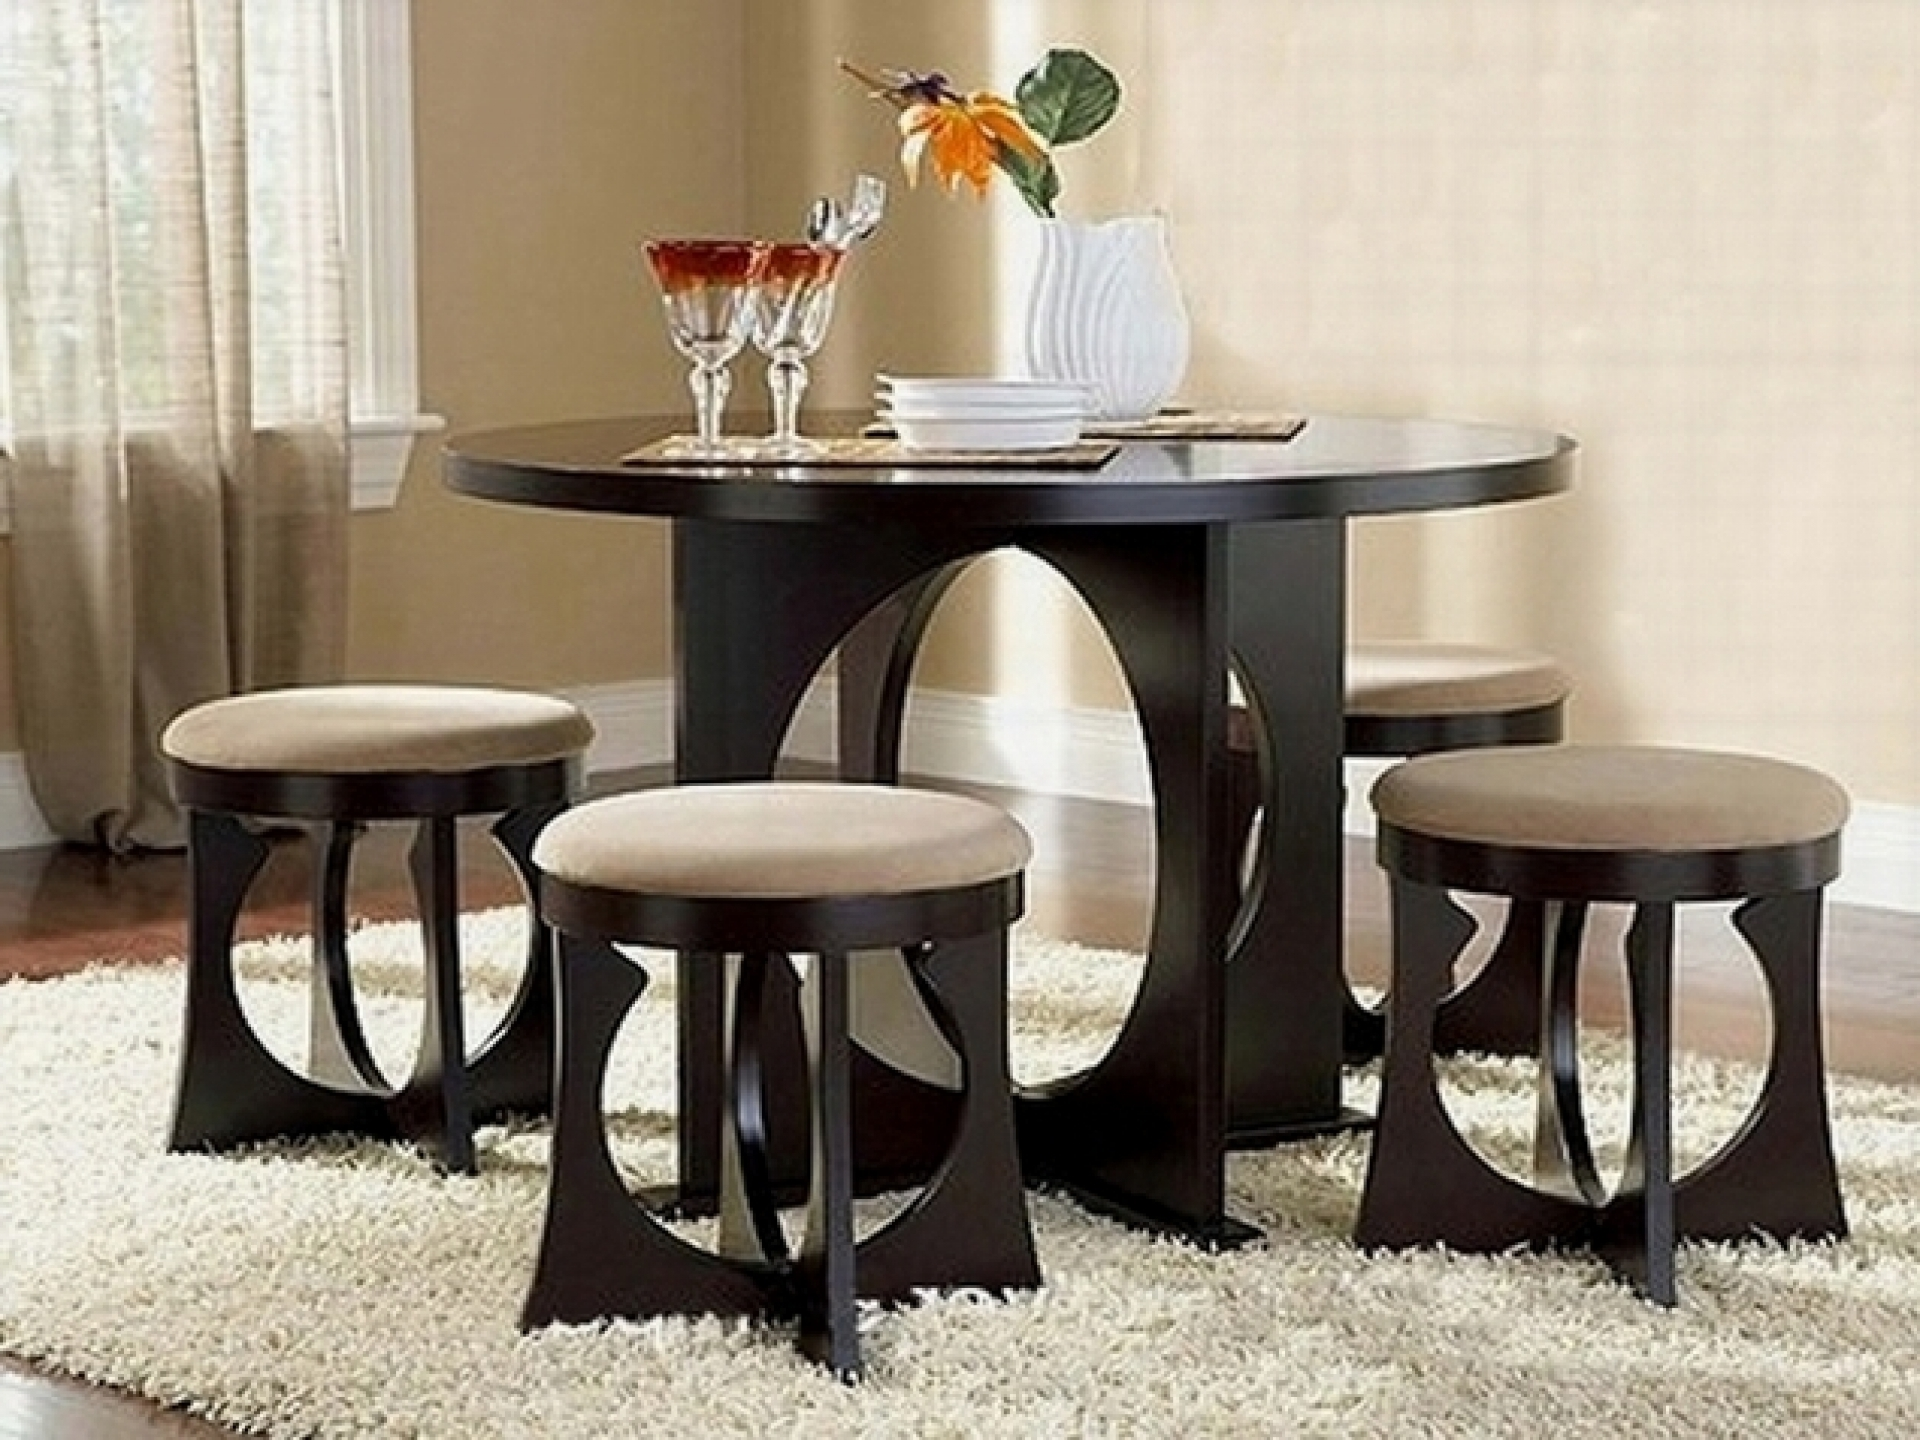 Trendy Compact Dining Tables Throughout Dining Room Dining Table And Chairs For Small Rooms Compact Dining (View 23 of 25)